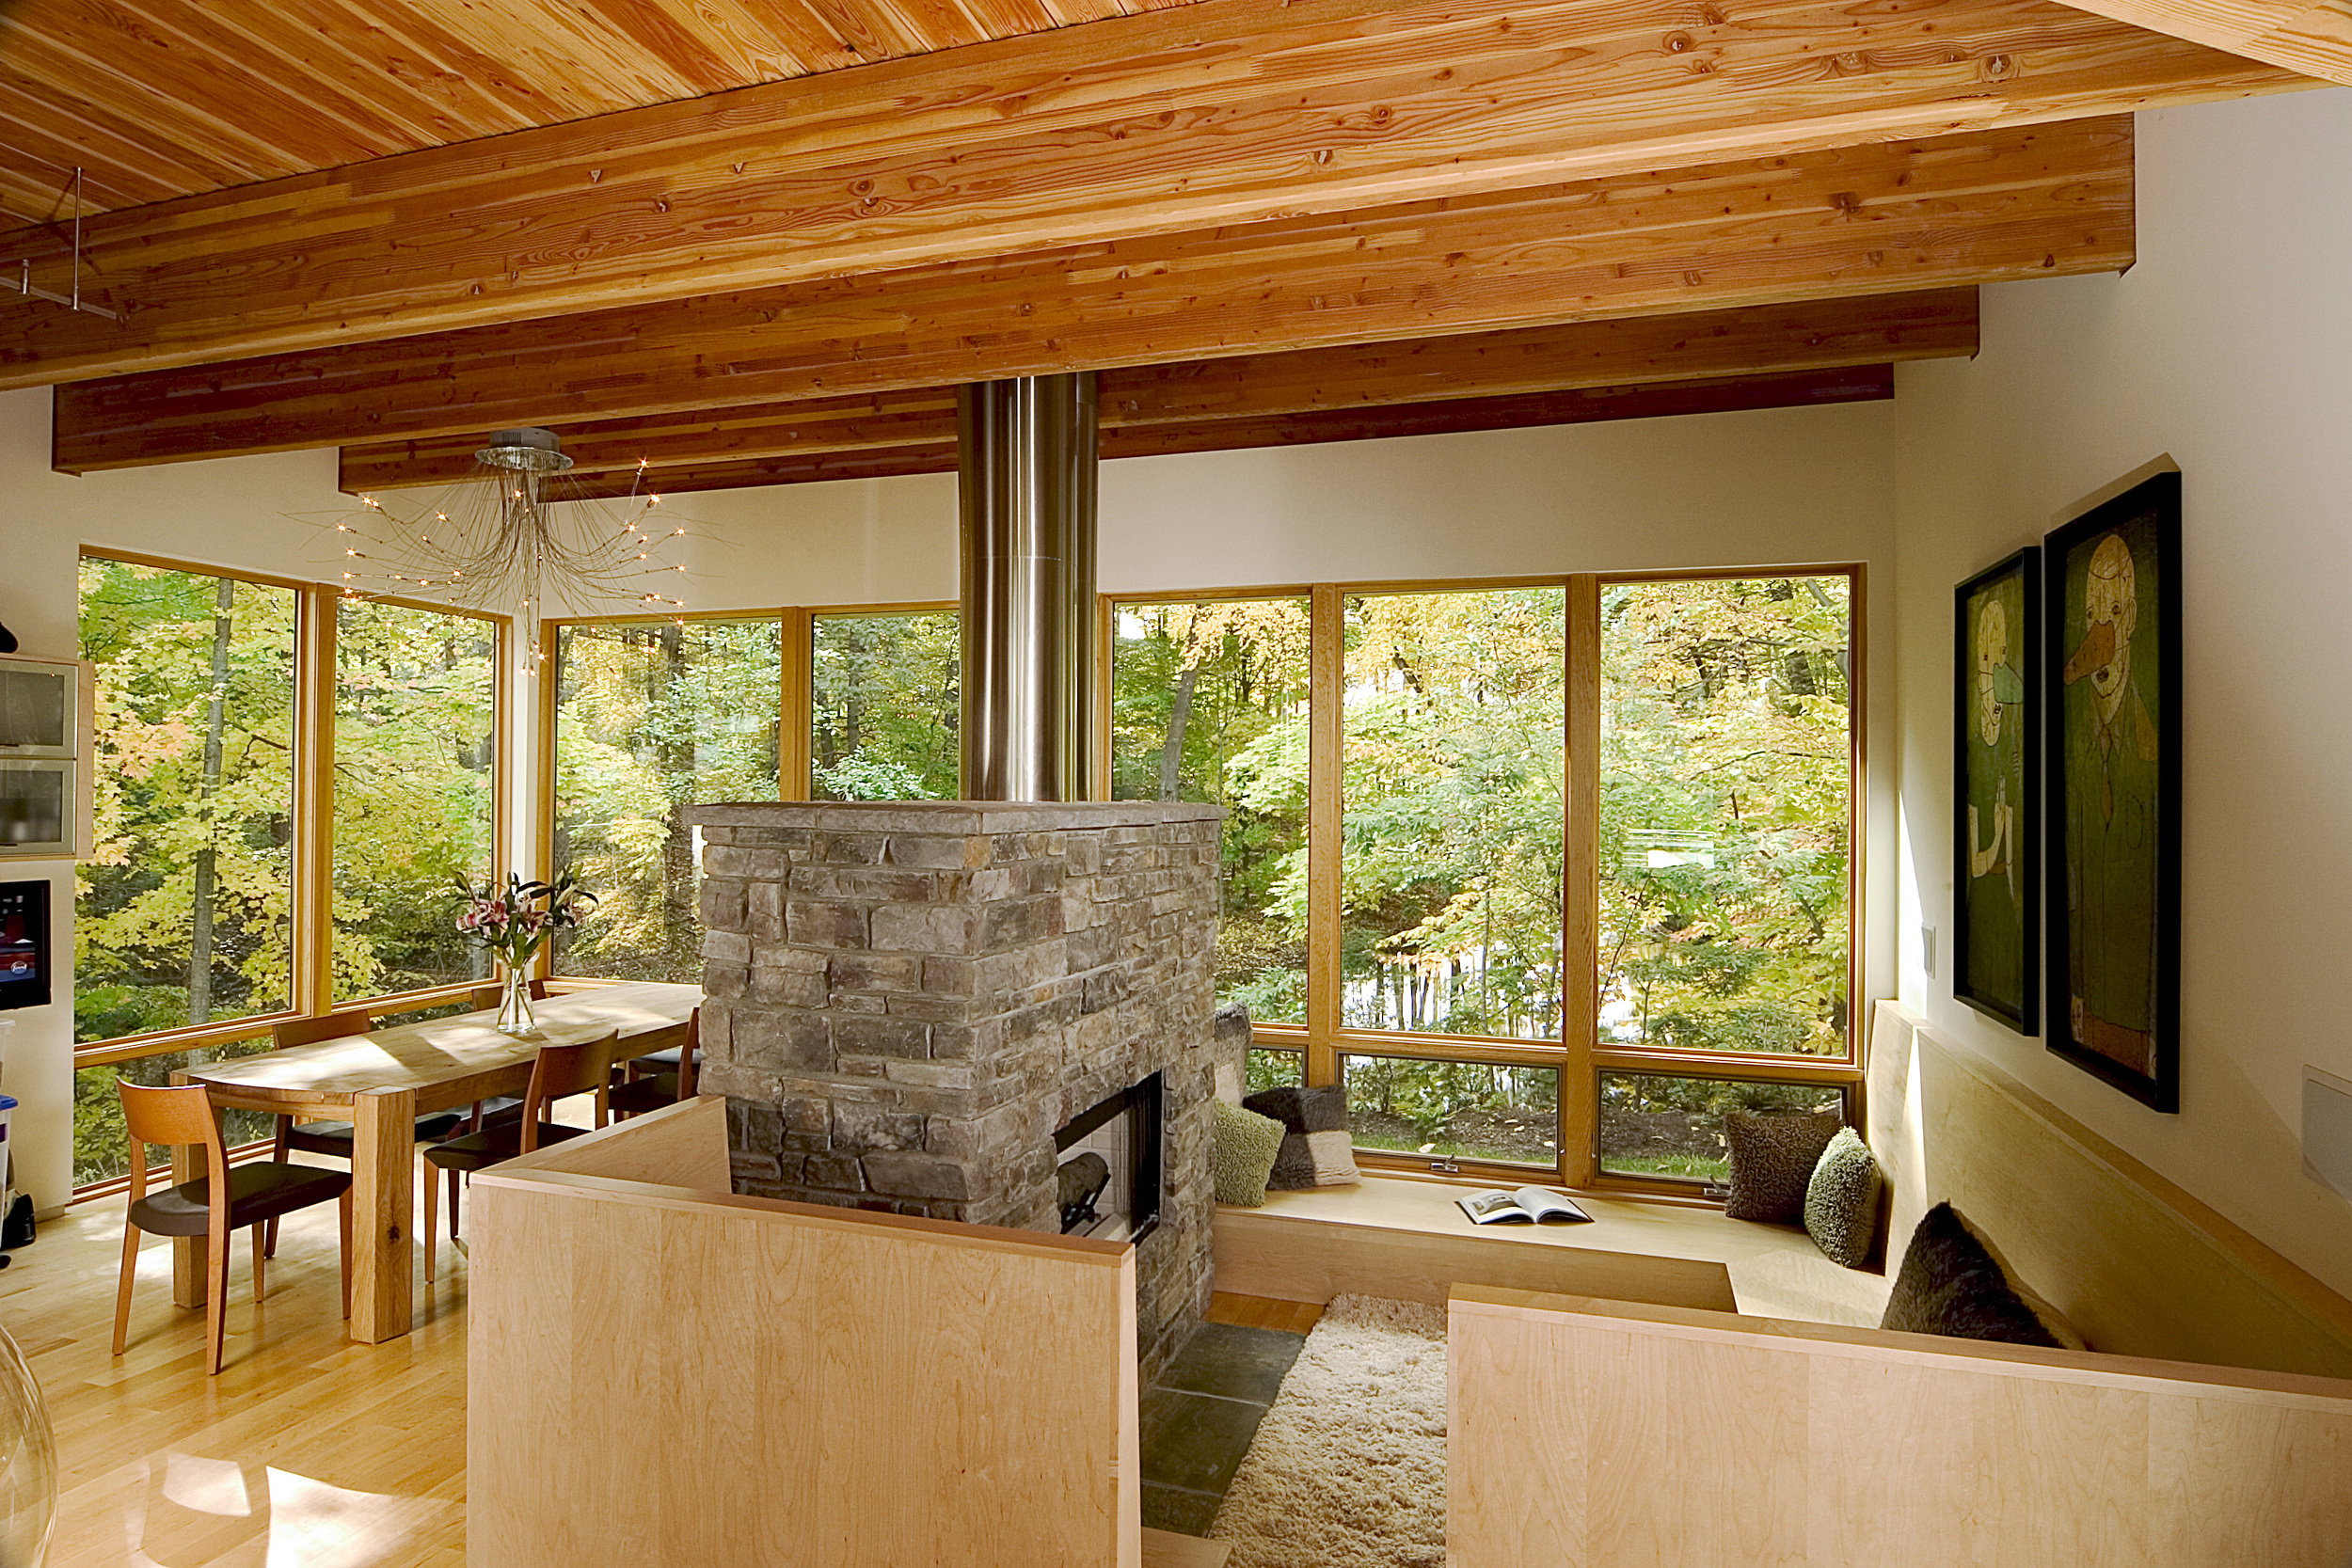 Sitting and Dining Spaces